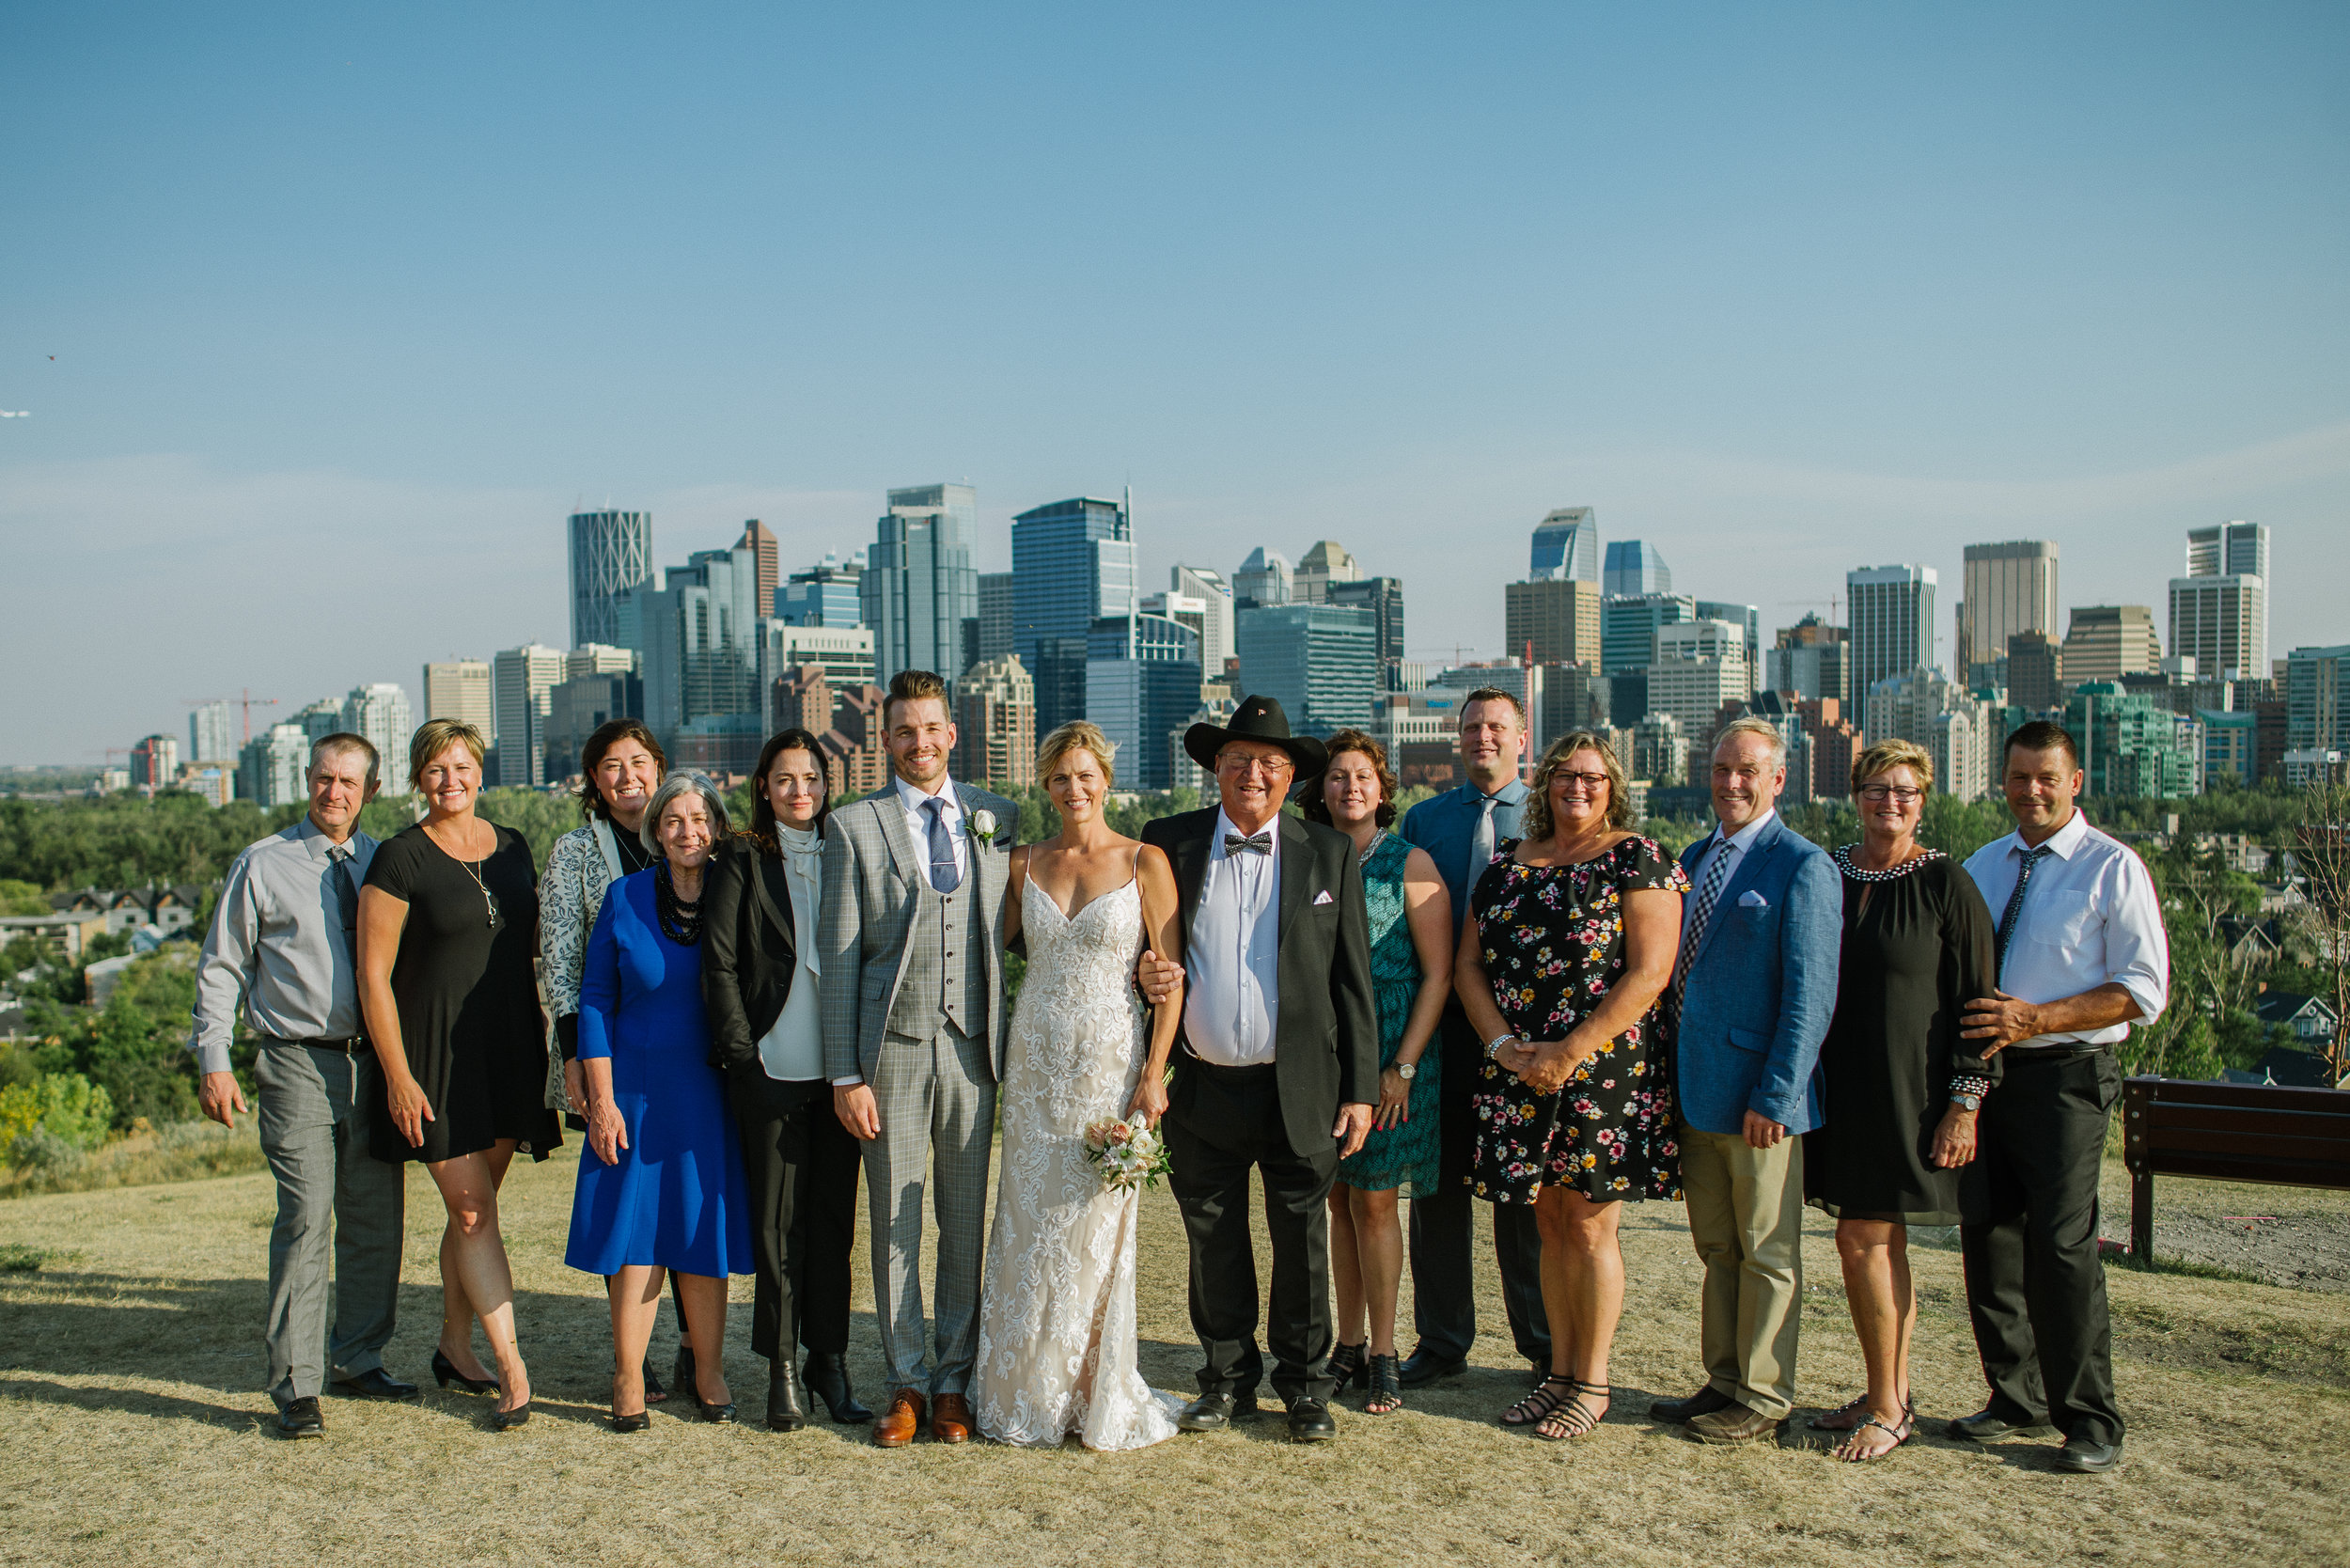 Calgary_Wedding_Photography_Melanie_Jeremy_Elopement_2017 0129.jpg